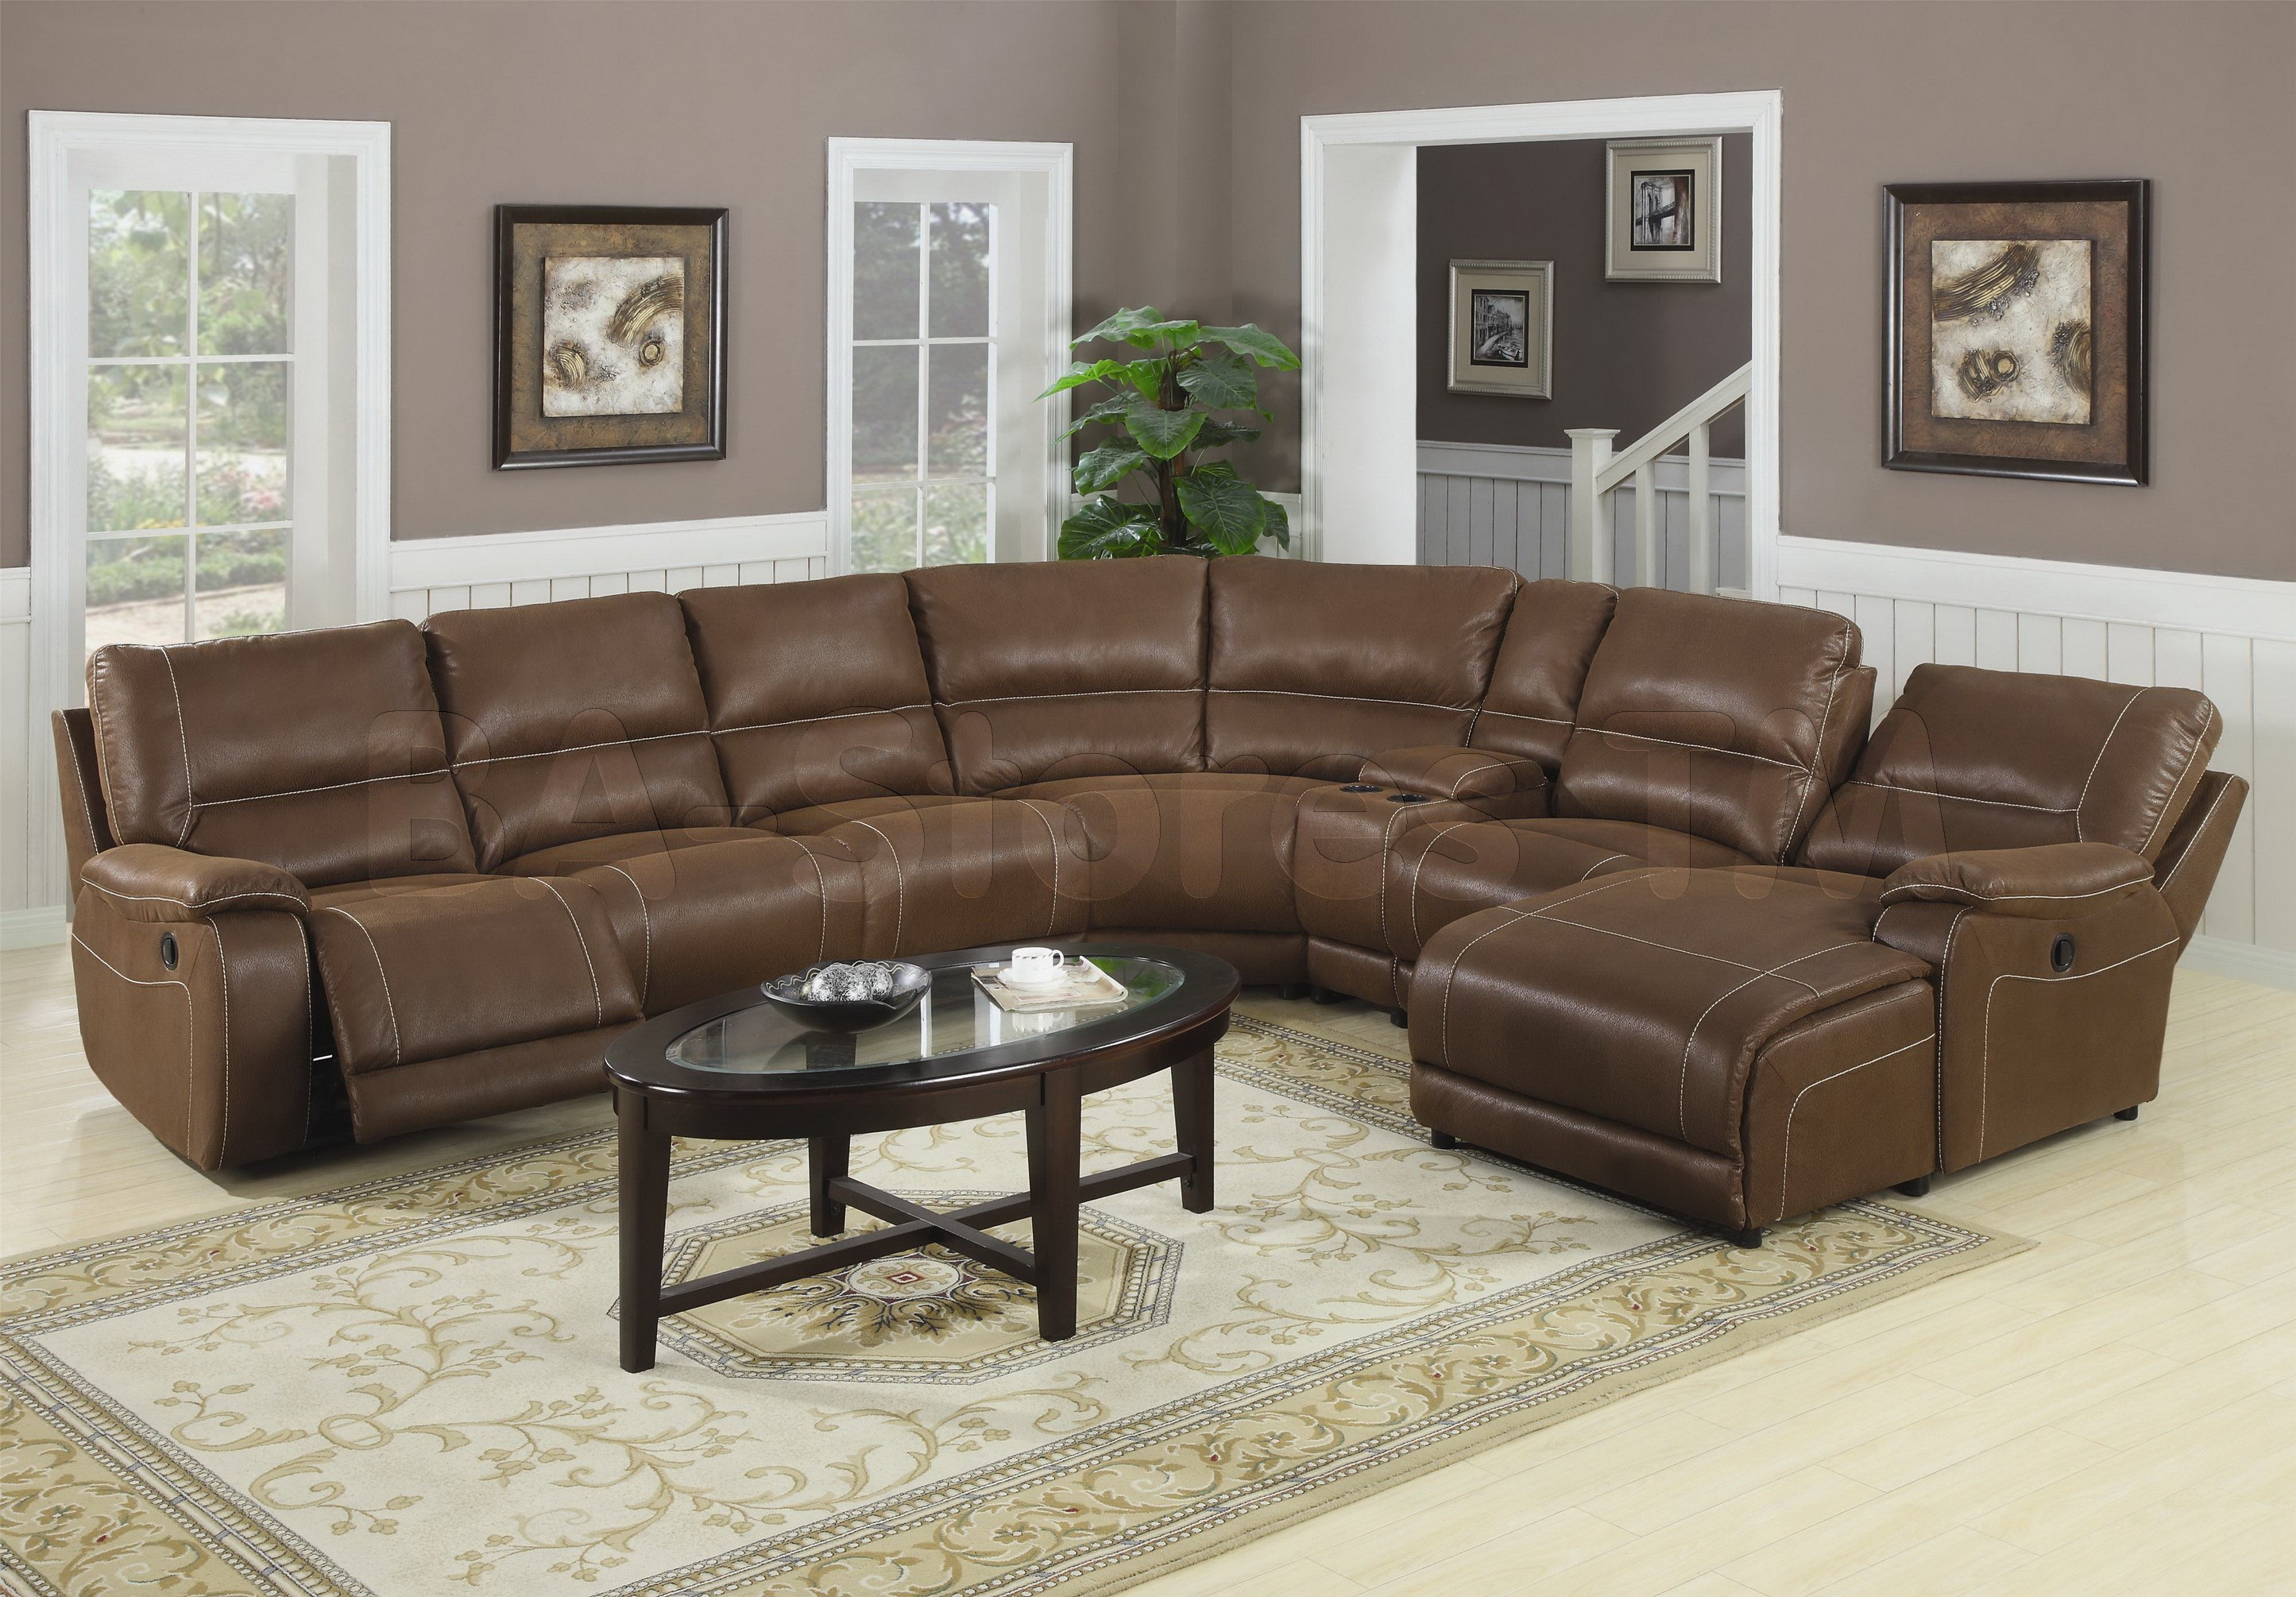 Stunning Furniture Amazing Leather Reclining Sectional Sofa Design For Large Sofas  With extra large sectional sofas with chaise